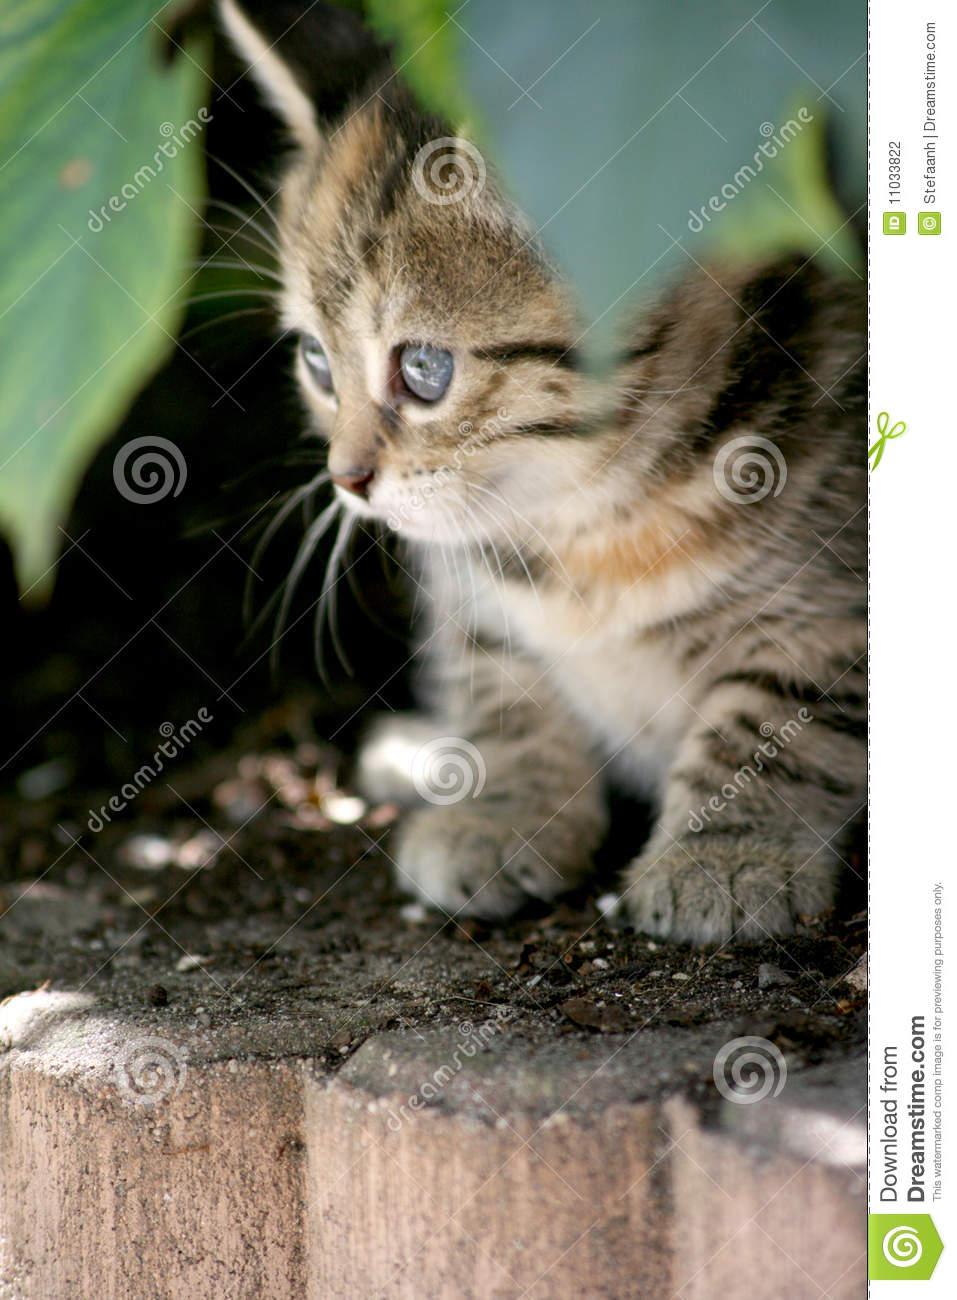 Hiding Kitten Stock Photo Image Of Small Brown Furry